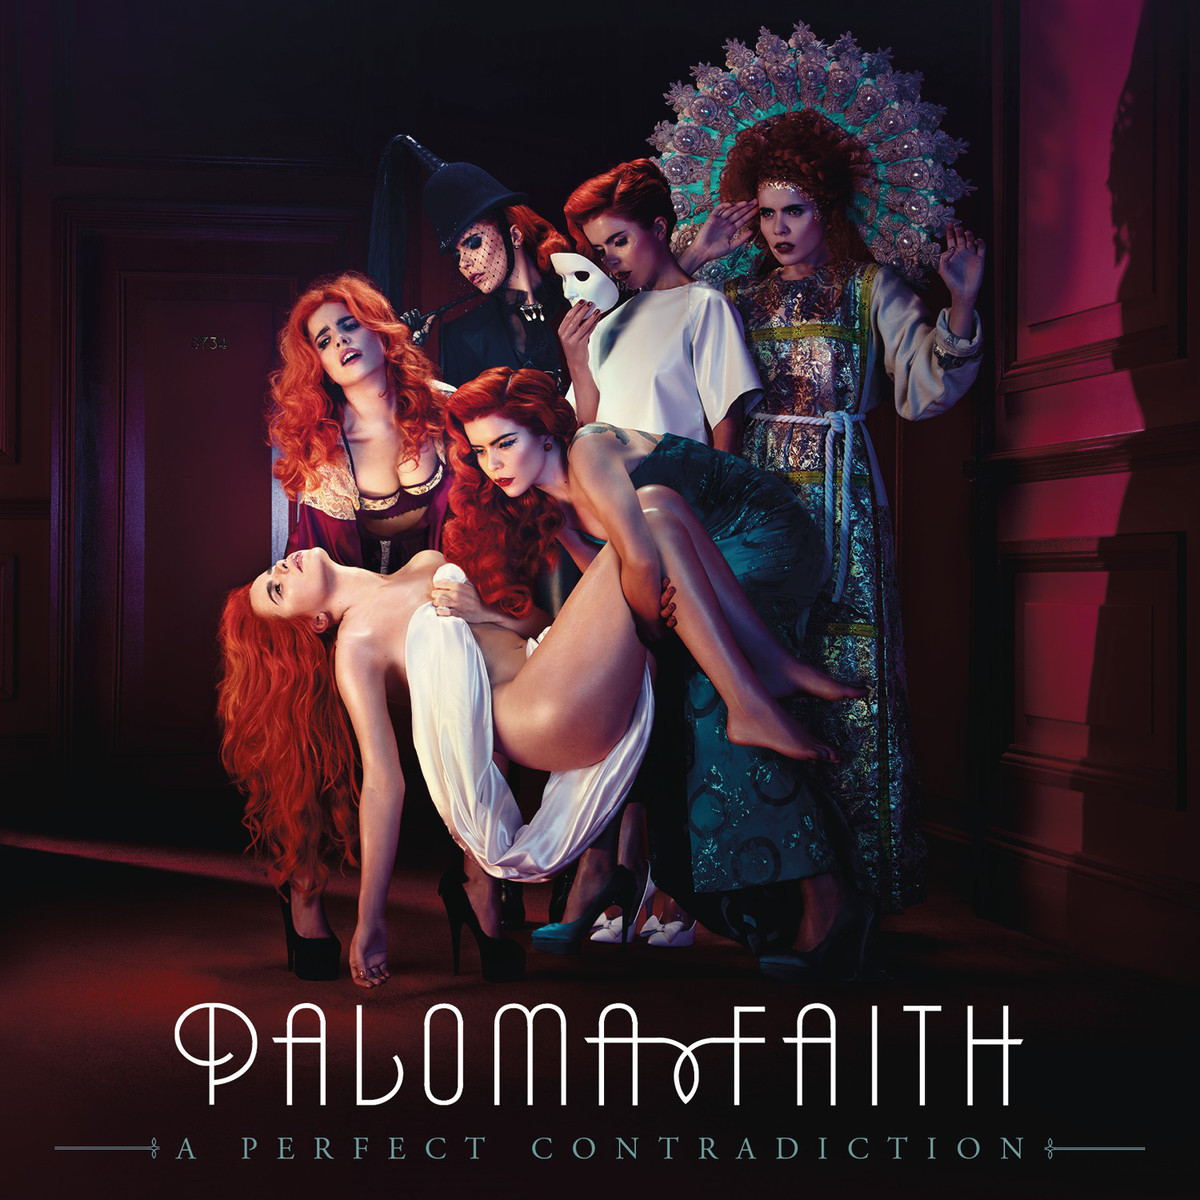 ItsNotYouItsMe Album Spin - Paloma Faith